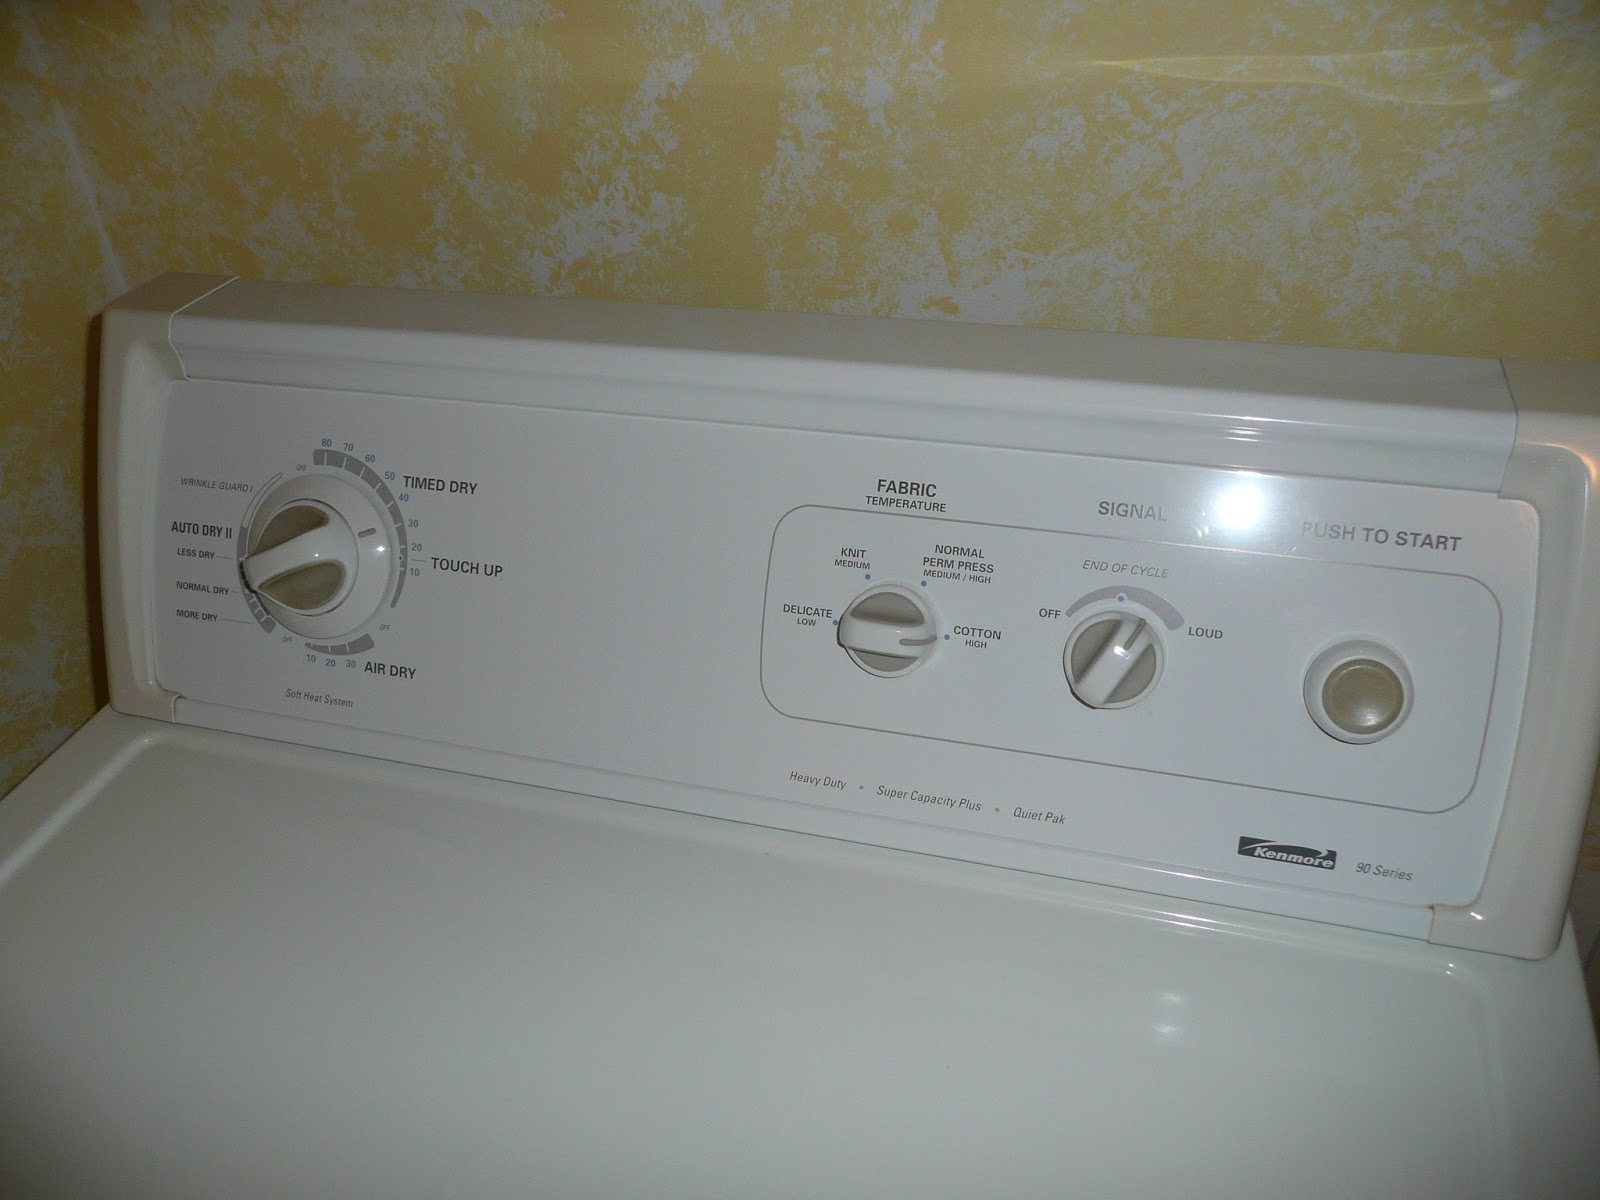 kenmore 90 series, model 110 clothes dryer runs but has stopped heating and  drying clothes